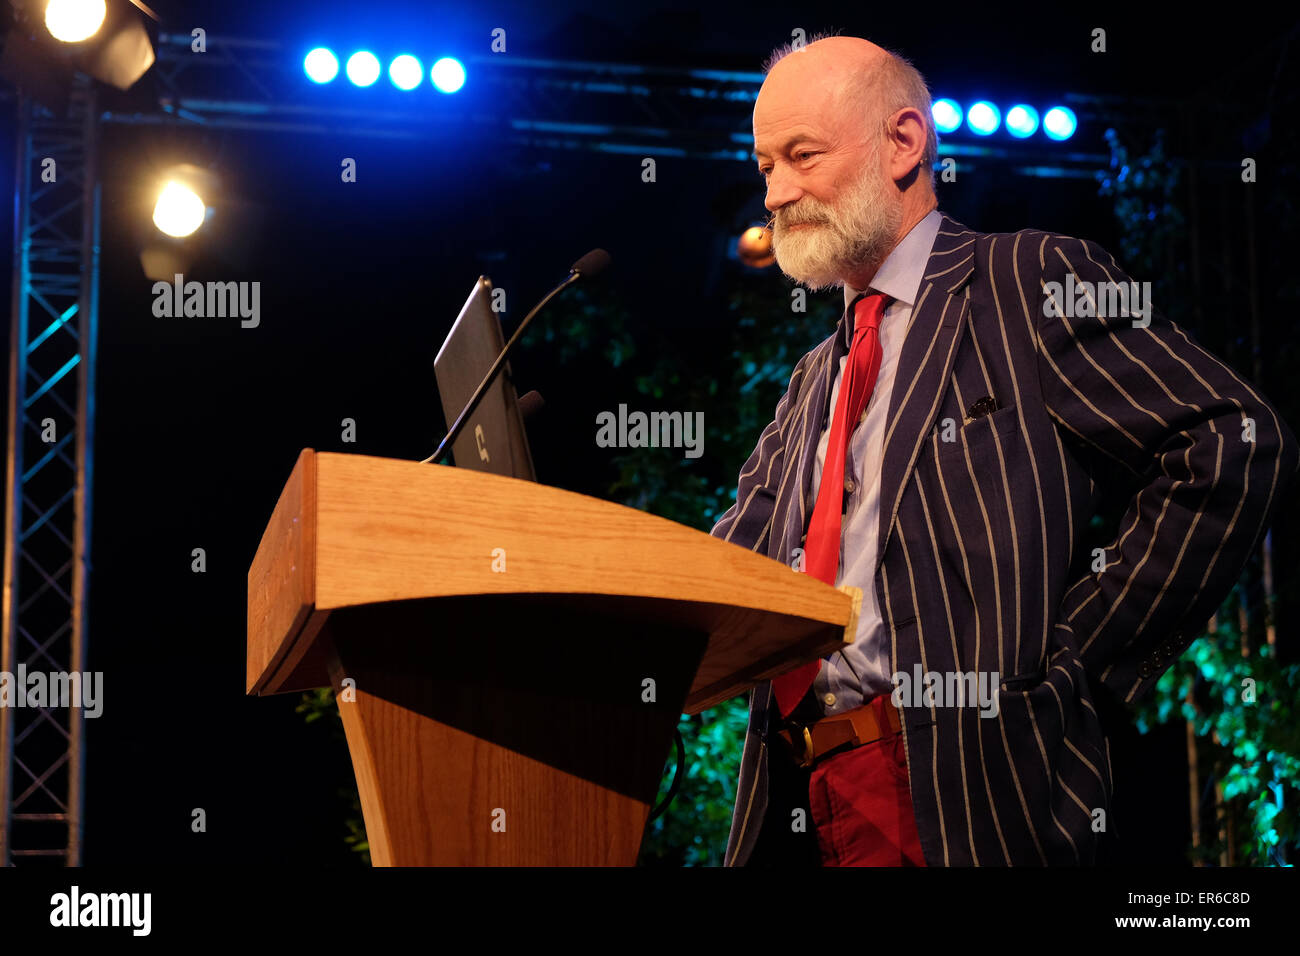 Hay Festival, Powys, Wales - May 2015  -  Author Raymond Tallis talks on stage about his latest book The Black Mirror - Stock Image